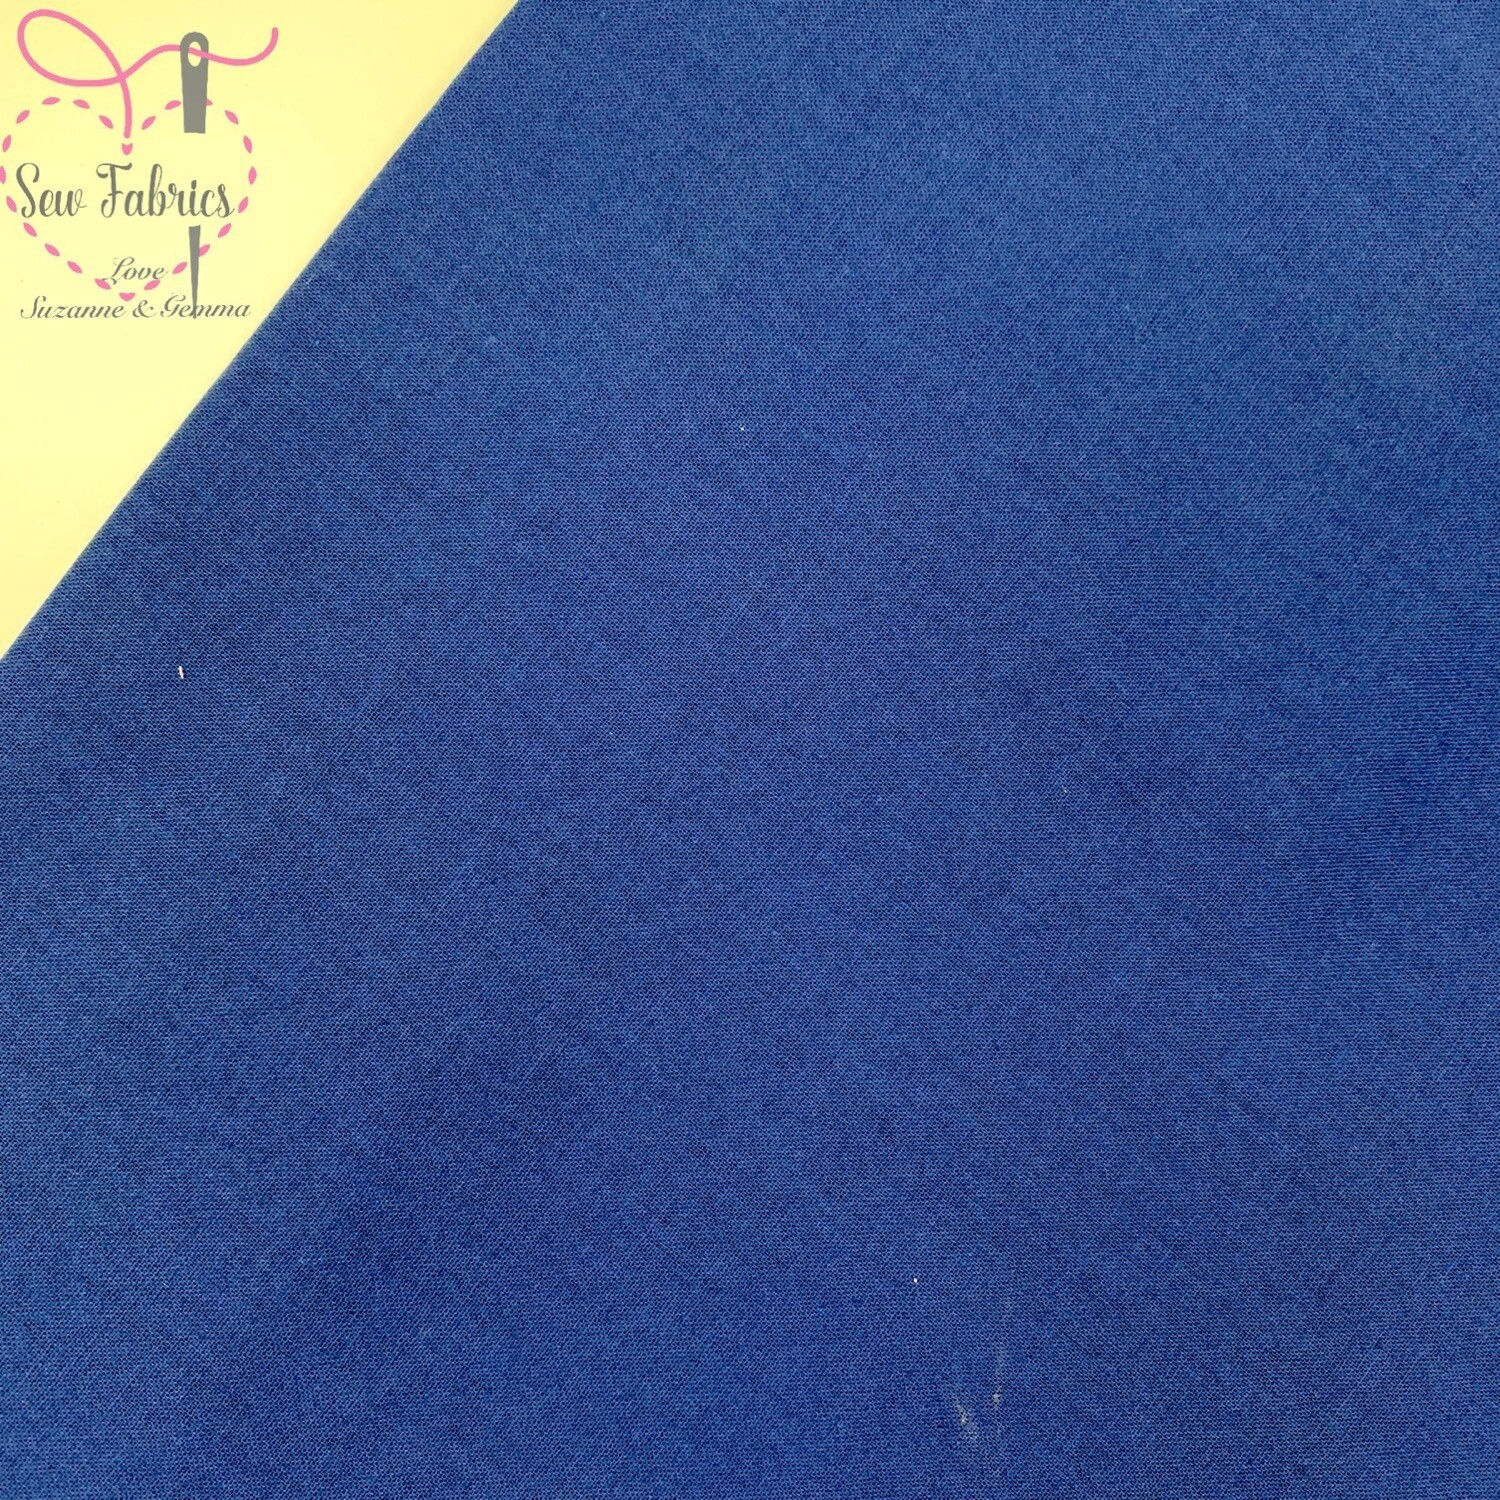 Navy 100% Craft Cotton Solid Fabric Plain Dark Blue Material